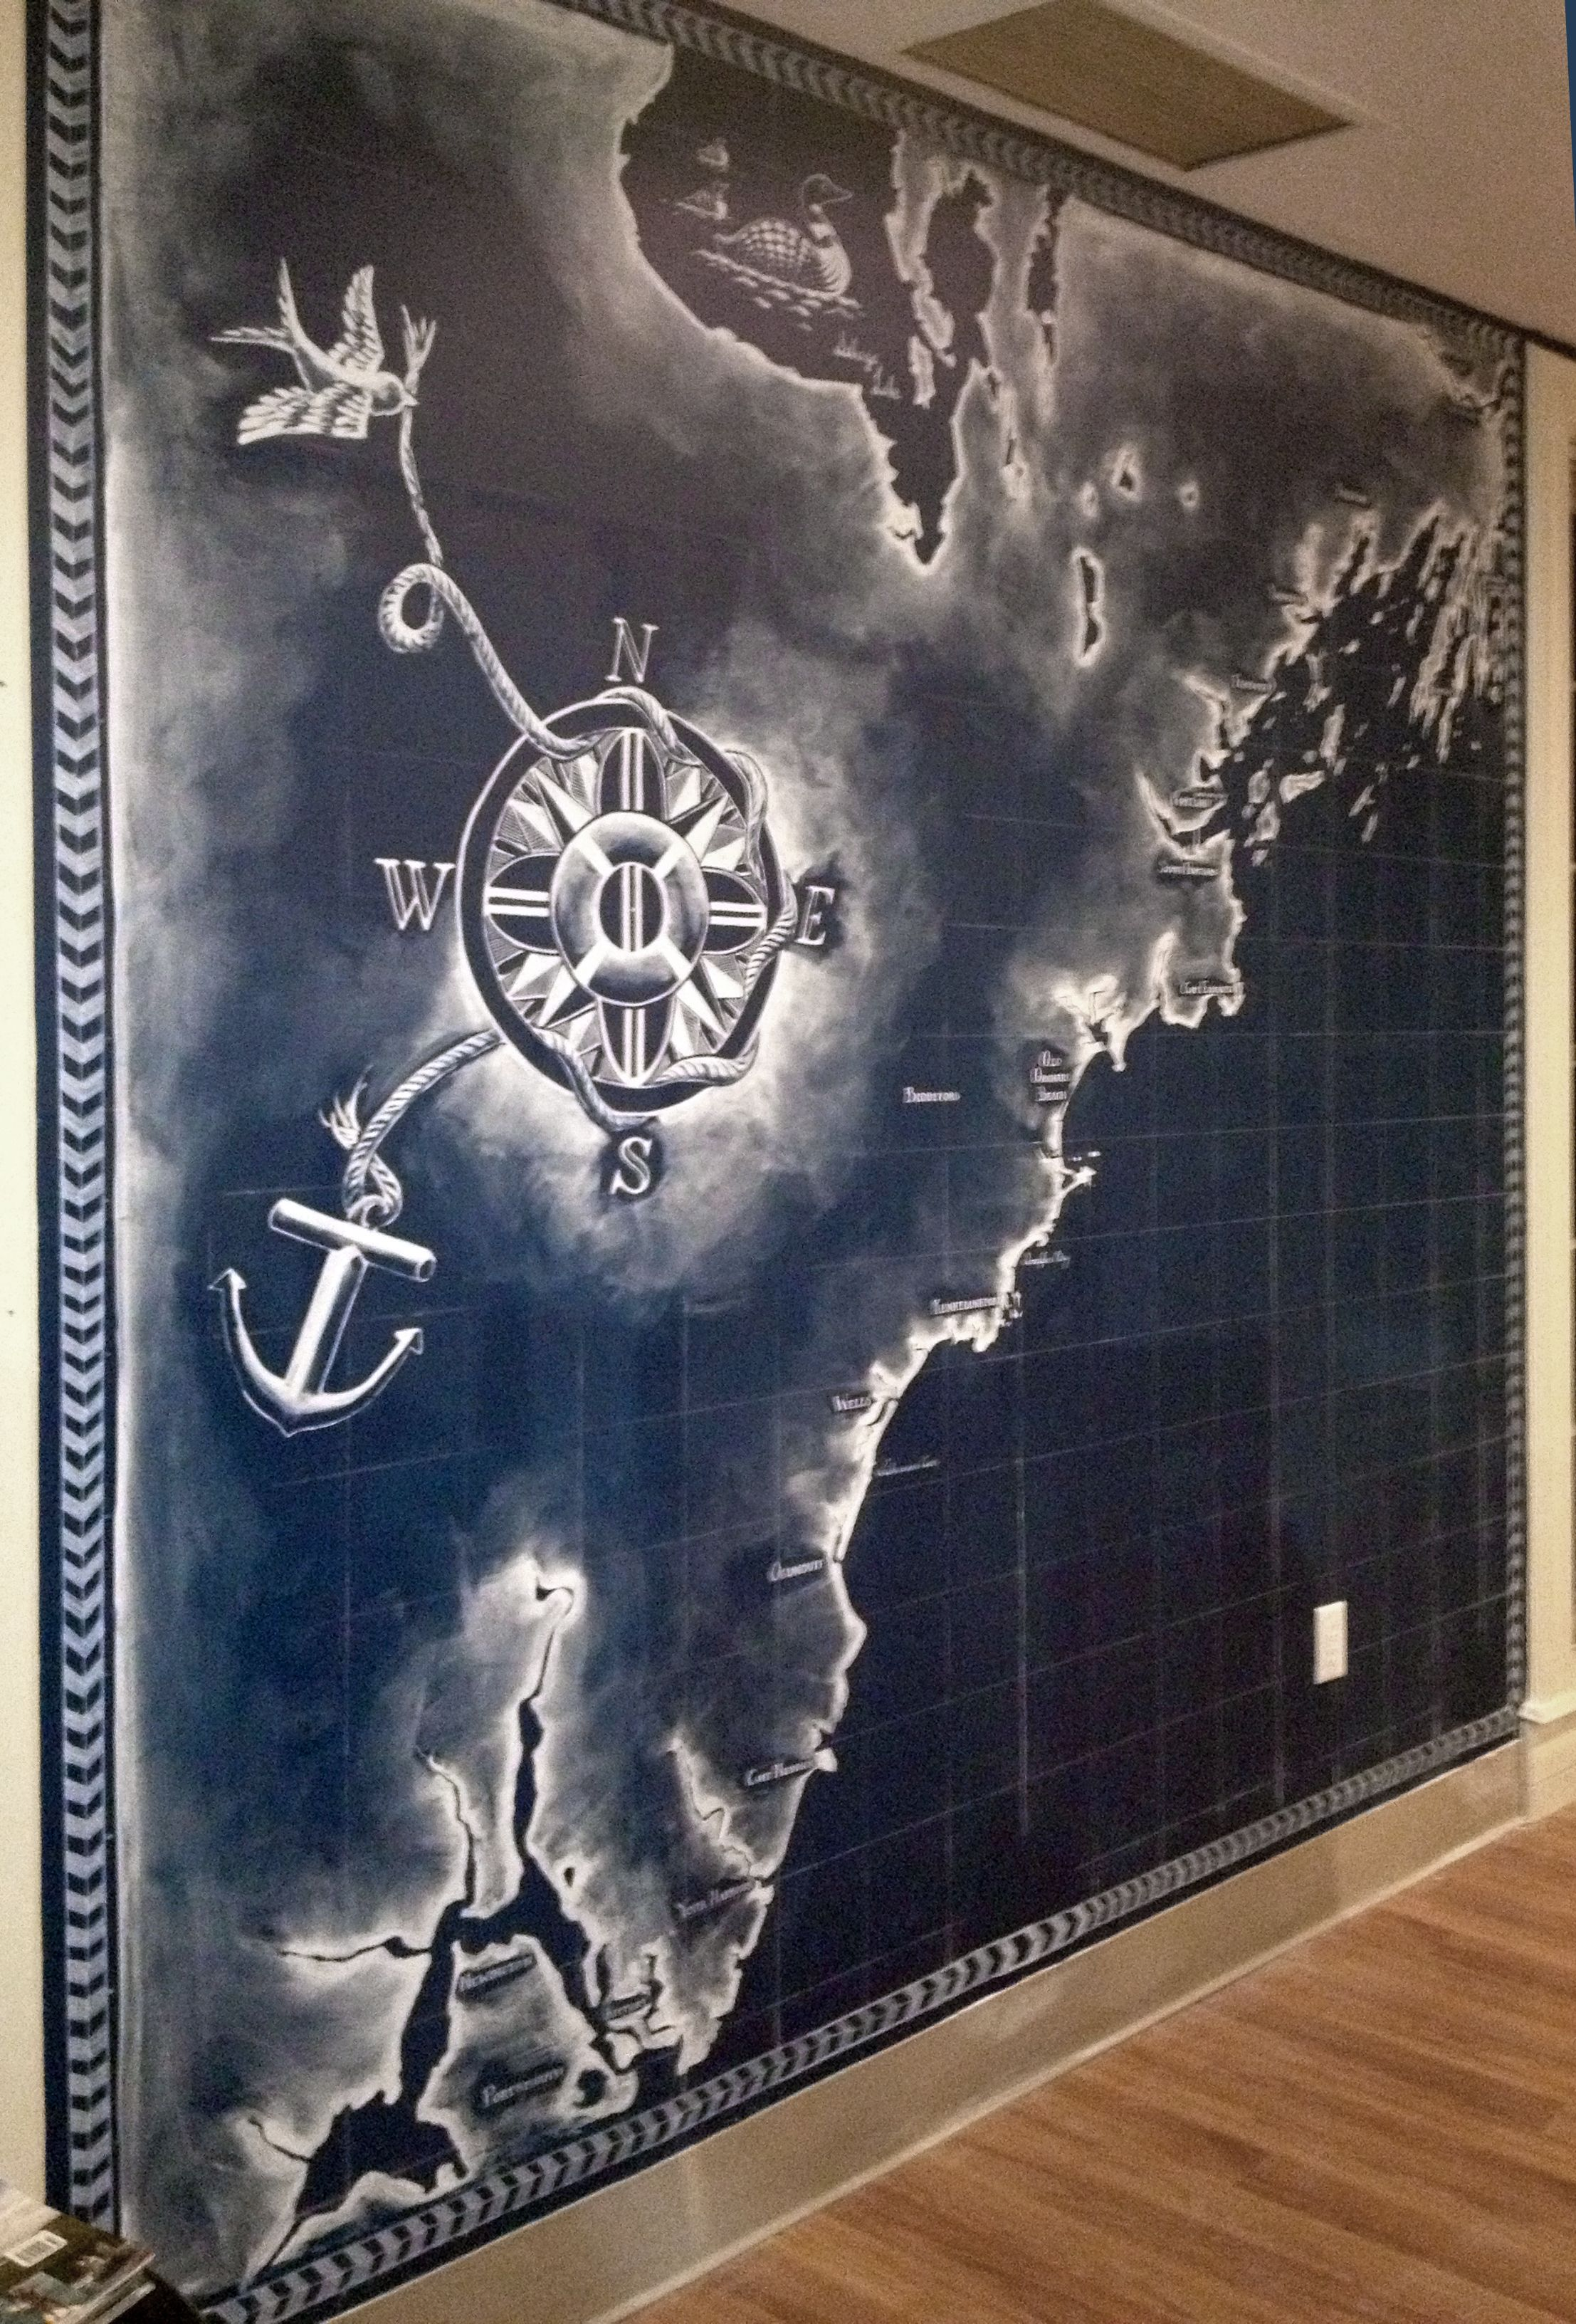 Coast Of Maine Mural For Maine Surfers Union By Tessa O Brien Www Tessagreenobrien Com Mural Art Surfer